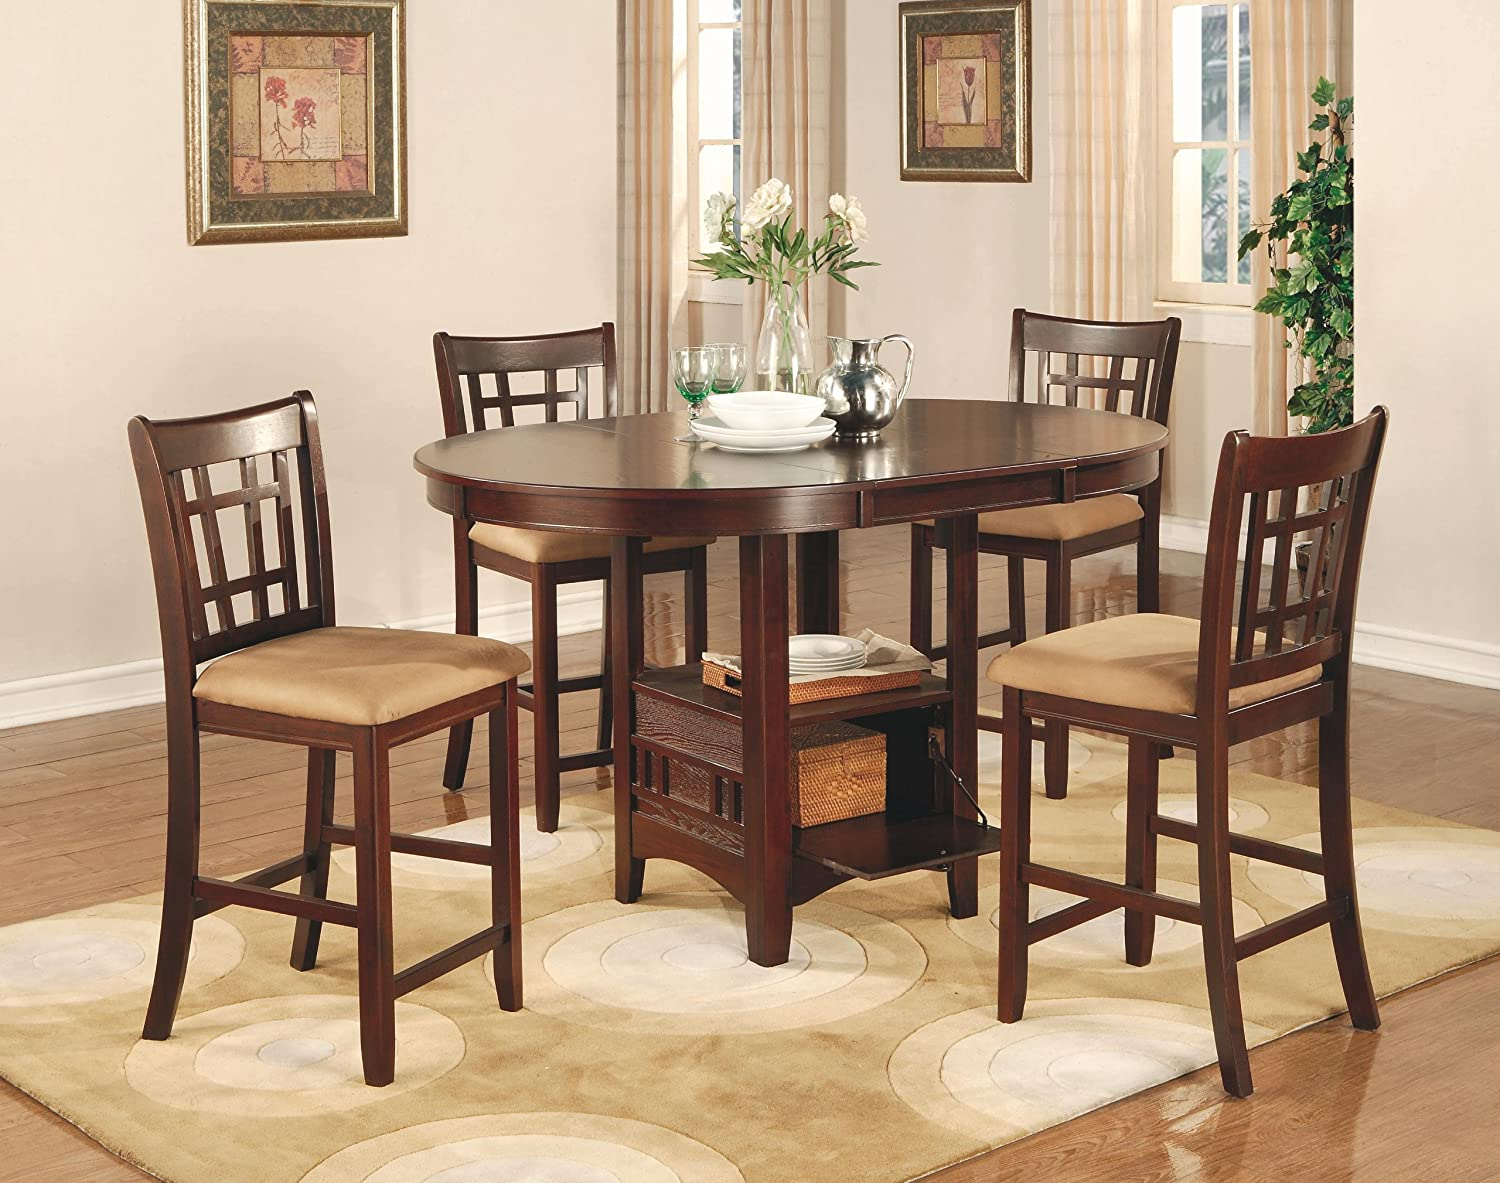 Amazon Coaster Lavon 5 Piece Counter Table and Chair Set in